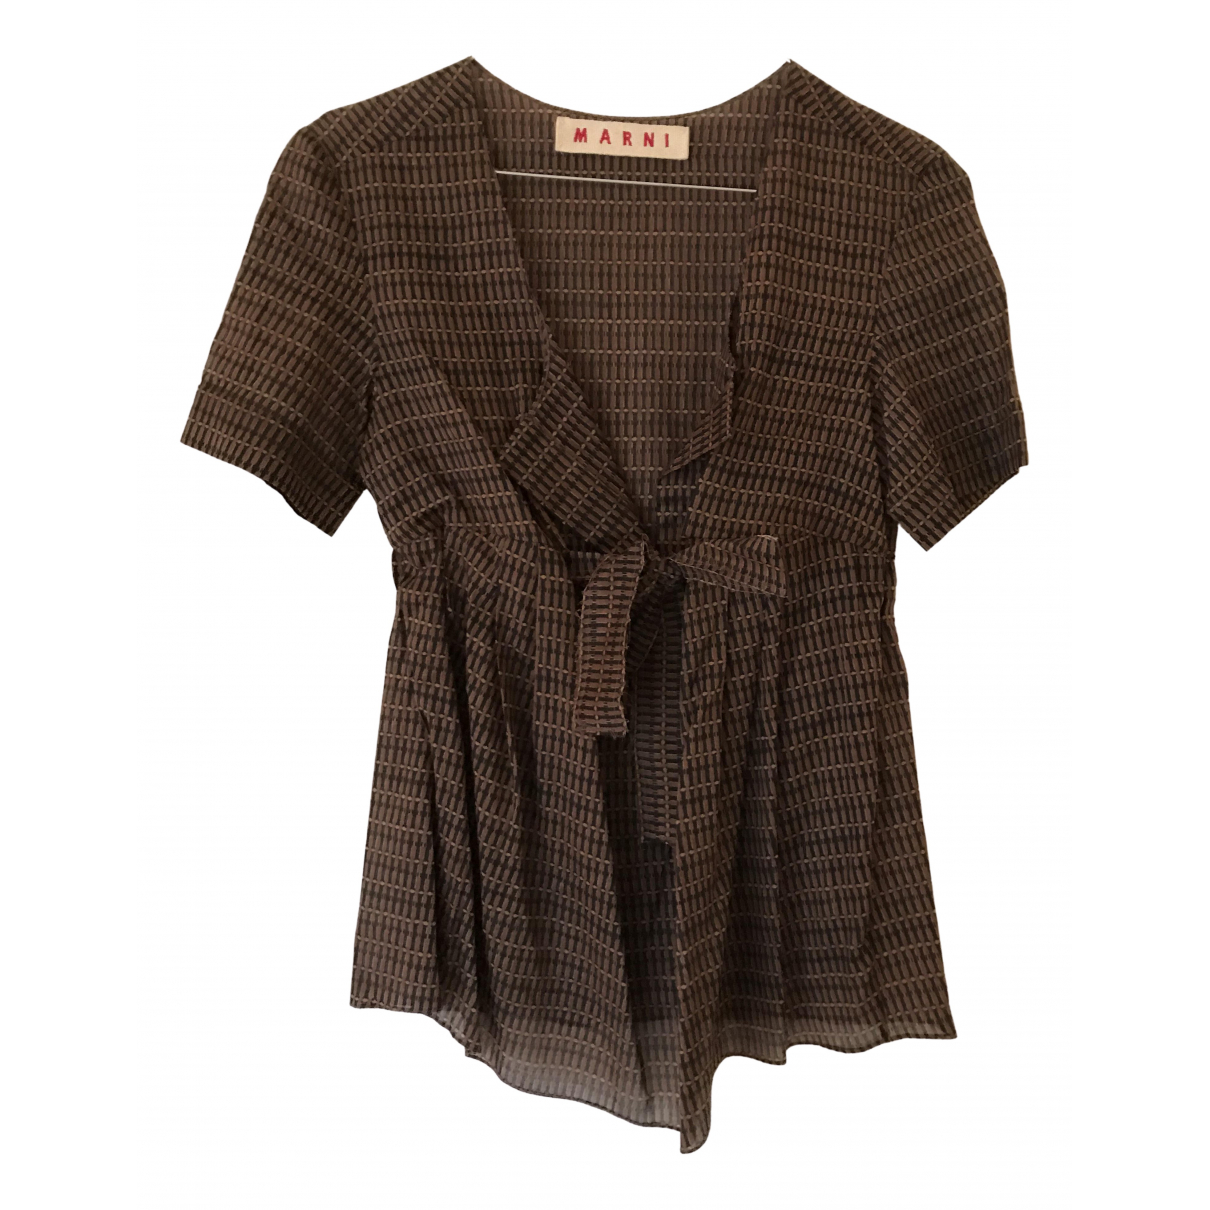 Marni N Brown Cotton  top for Women 38 IT